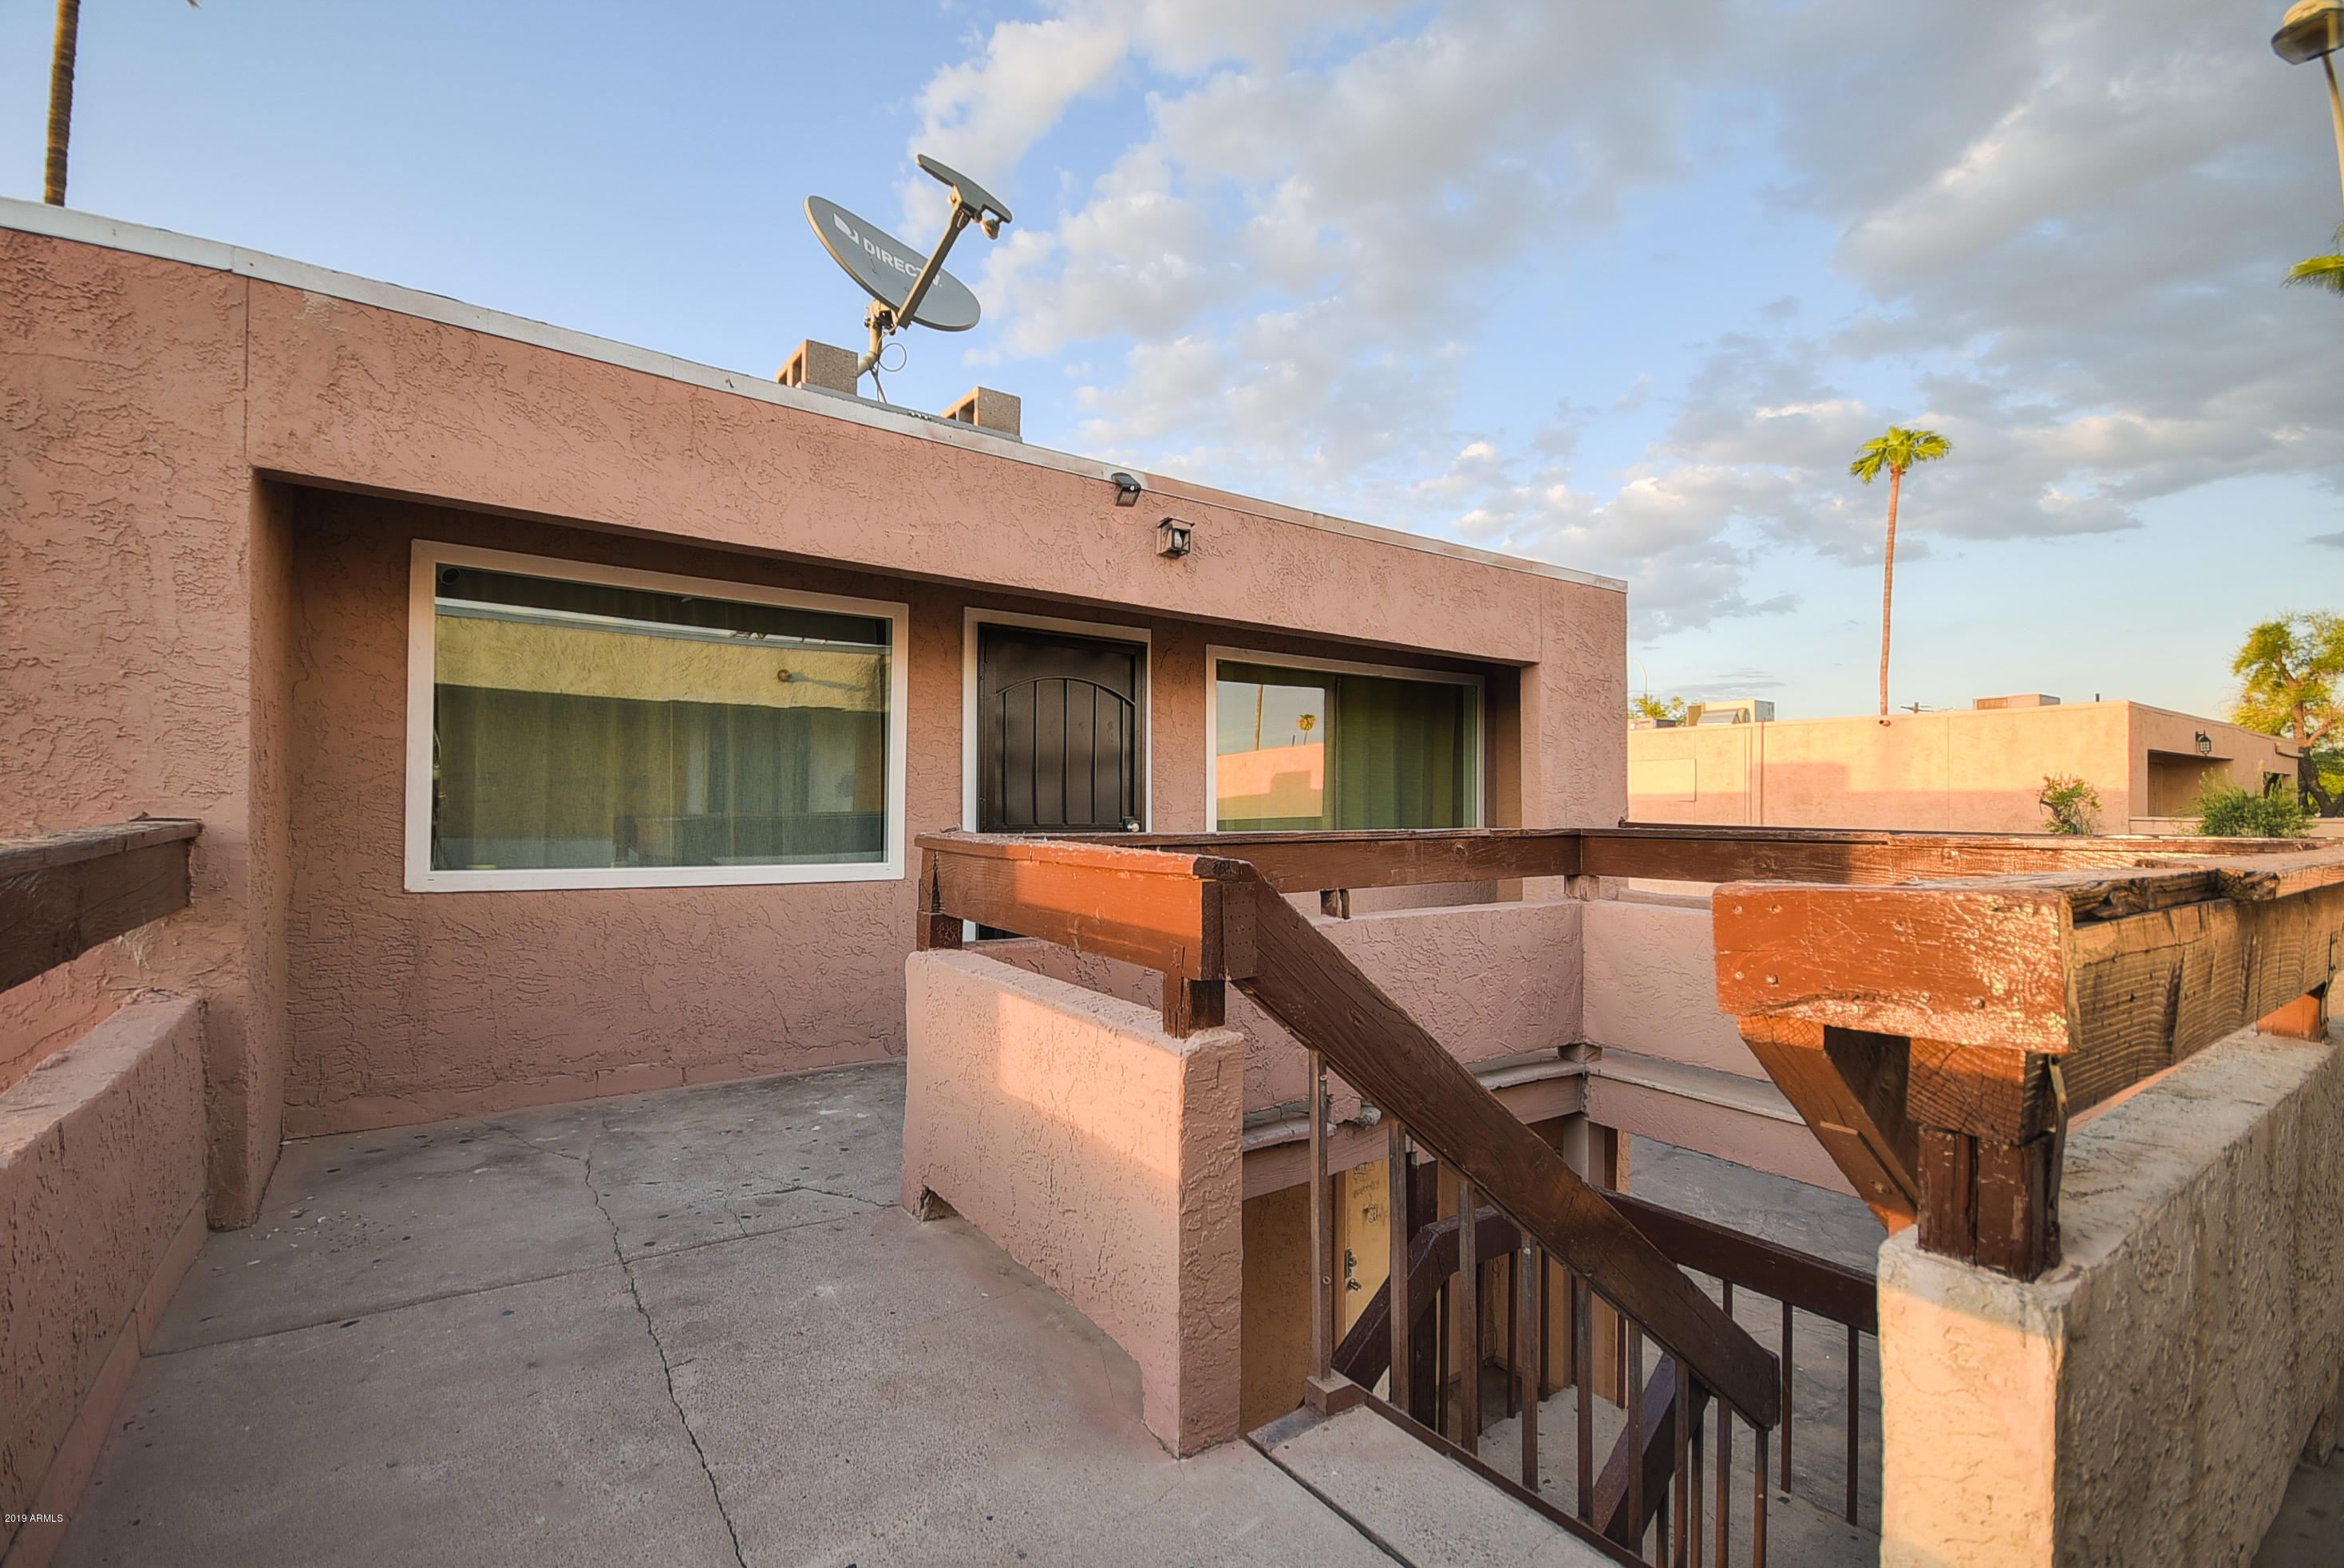 Photo of 2642 N 43RD Avenue #6D, Phoenix, AZ 85009